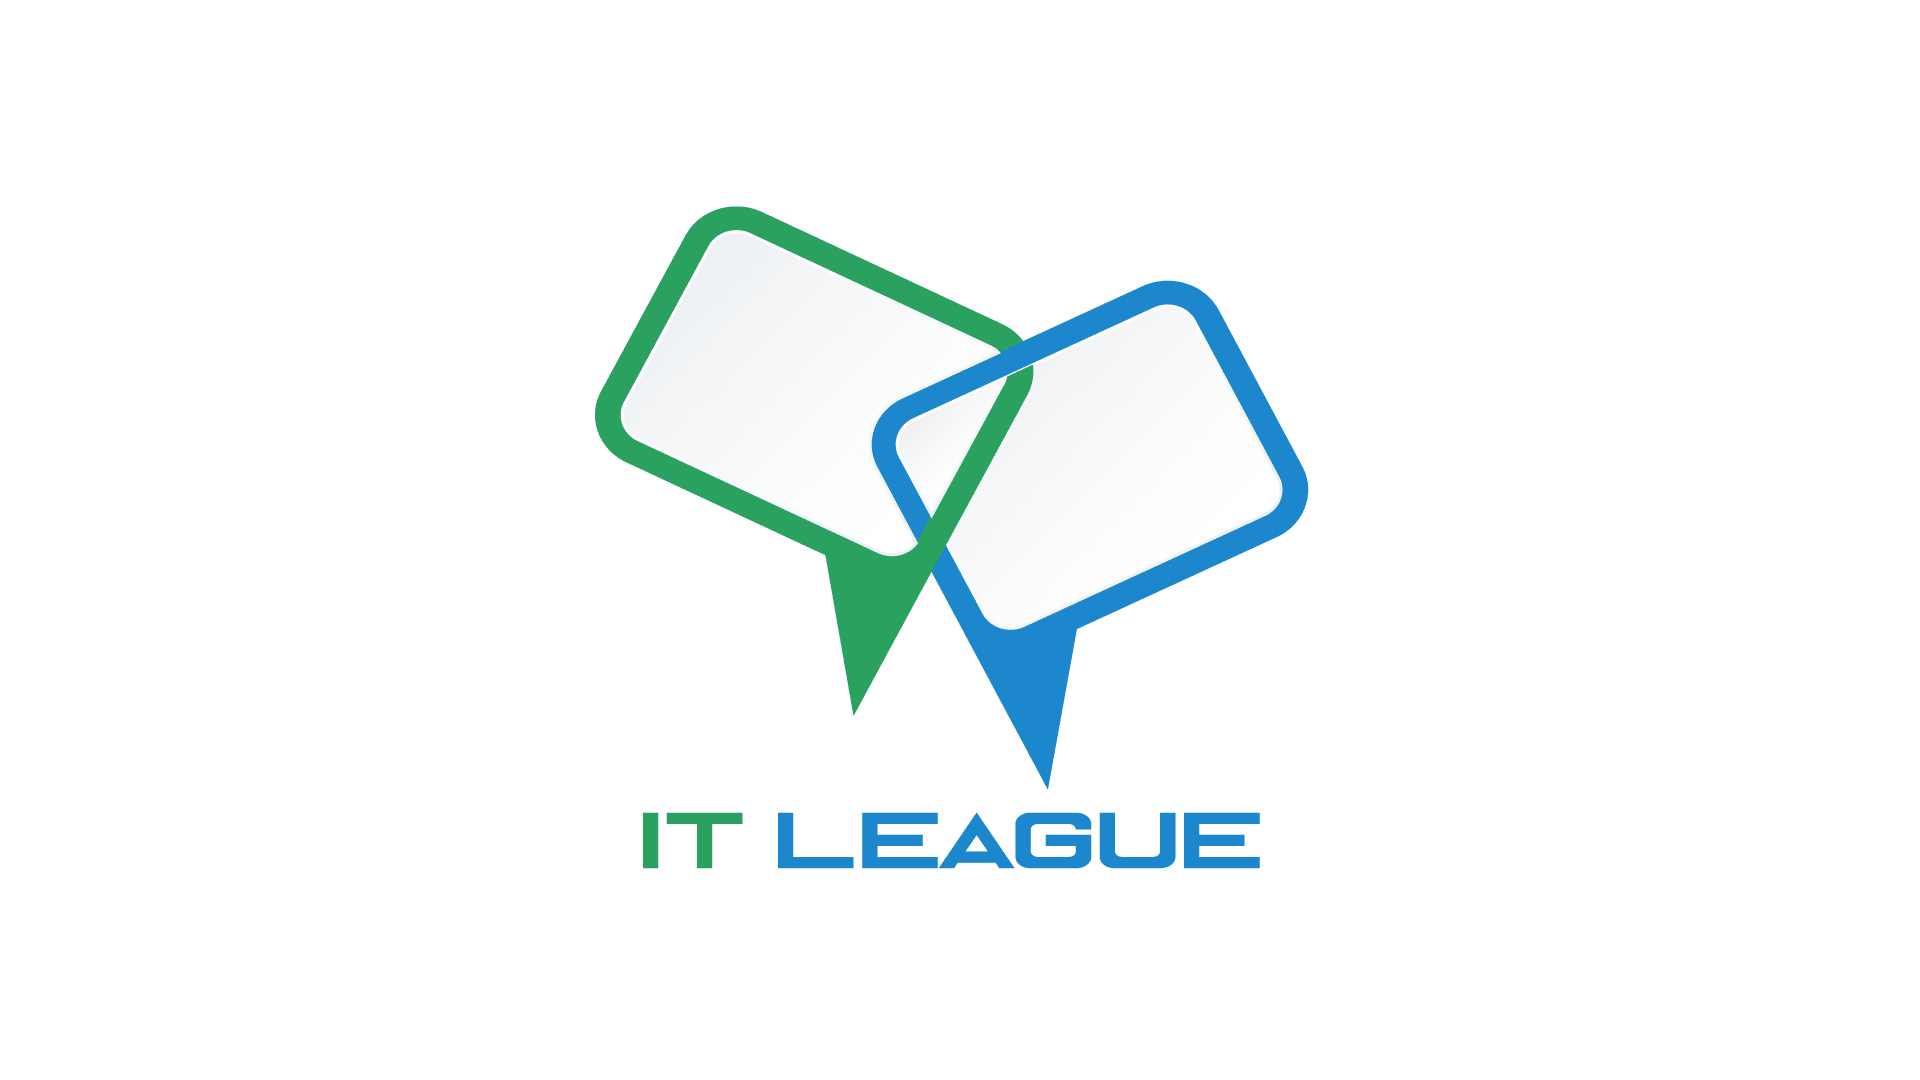 ITleague Logo